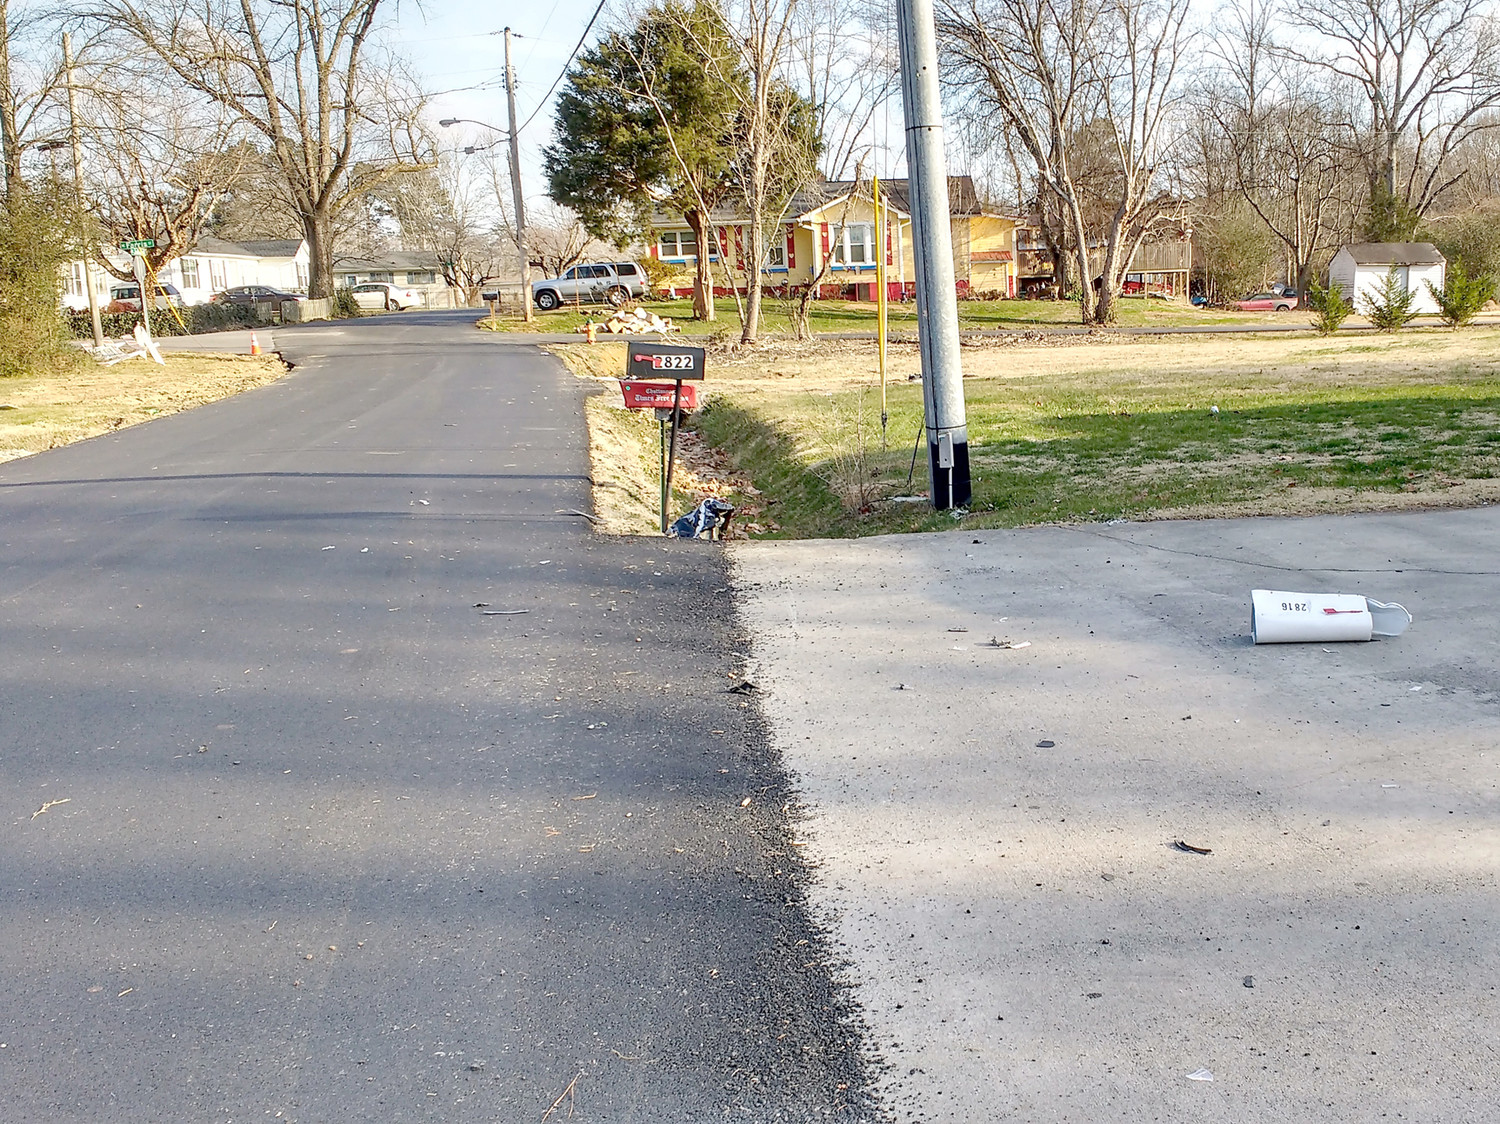 A MAILBOX ON Julian Drive was struck by a passing vehicle and tossed into this driveway. Residents of the neighborhood say traffic uses the community's streets as alternate routes and have severely damage the pavement.